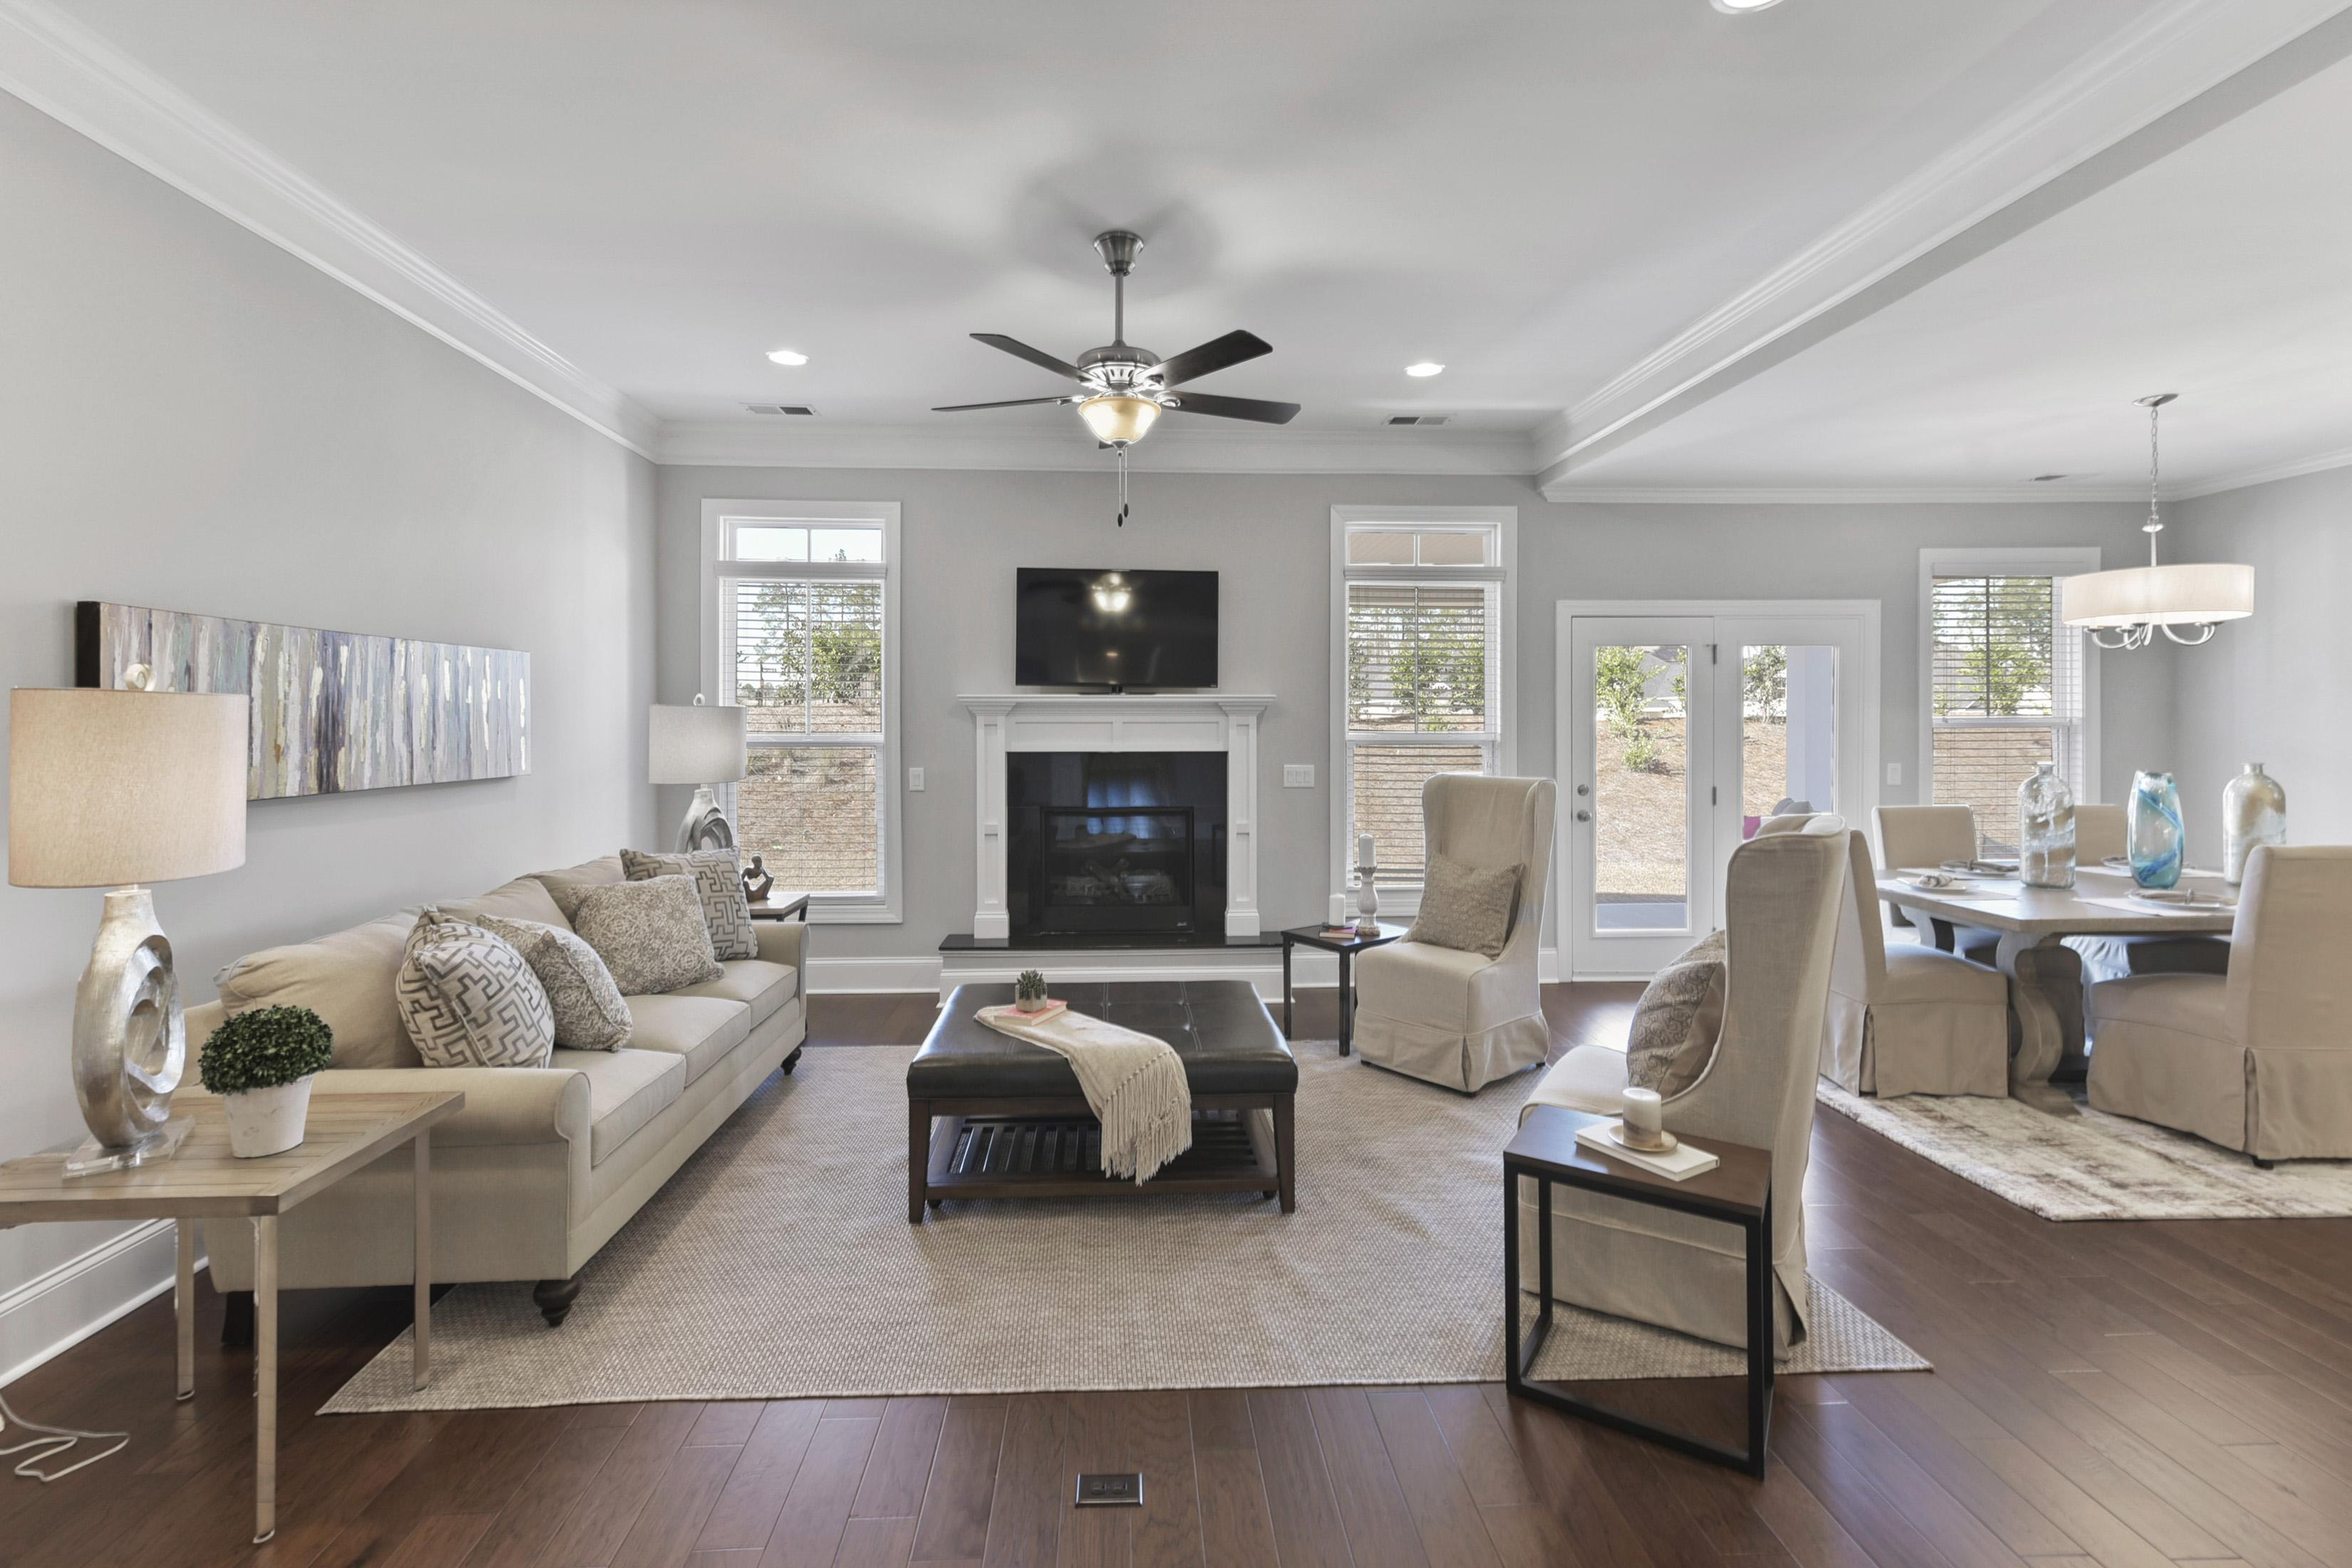 Living Area featured in the Northwood Villas-Sawgrass I By Executive Construction Homes